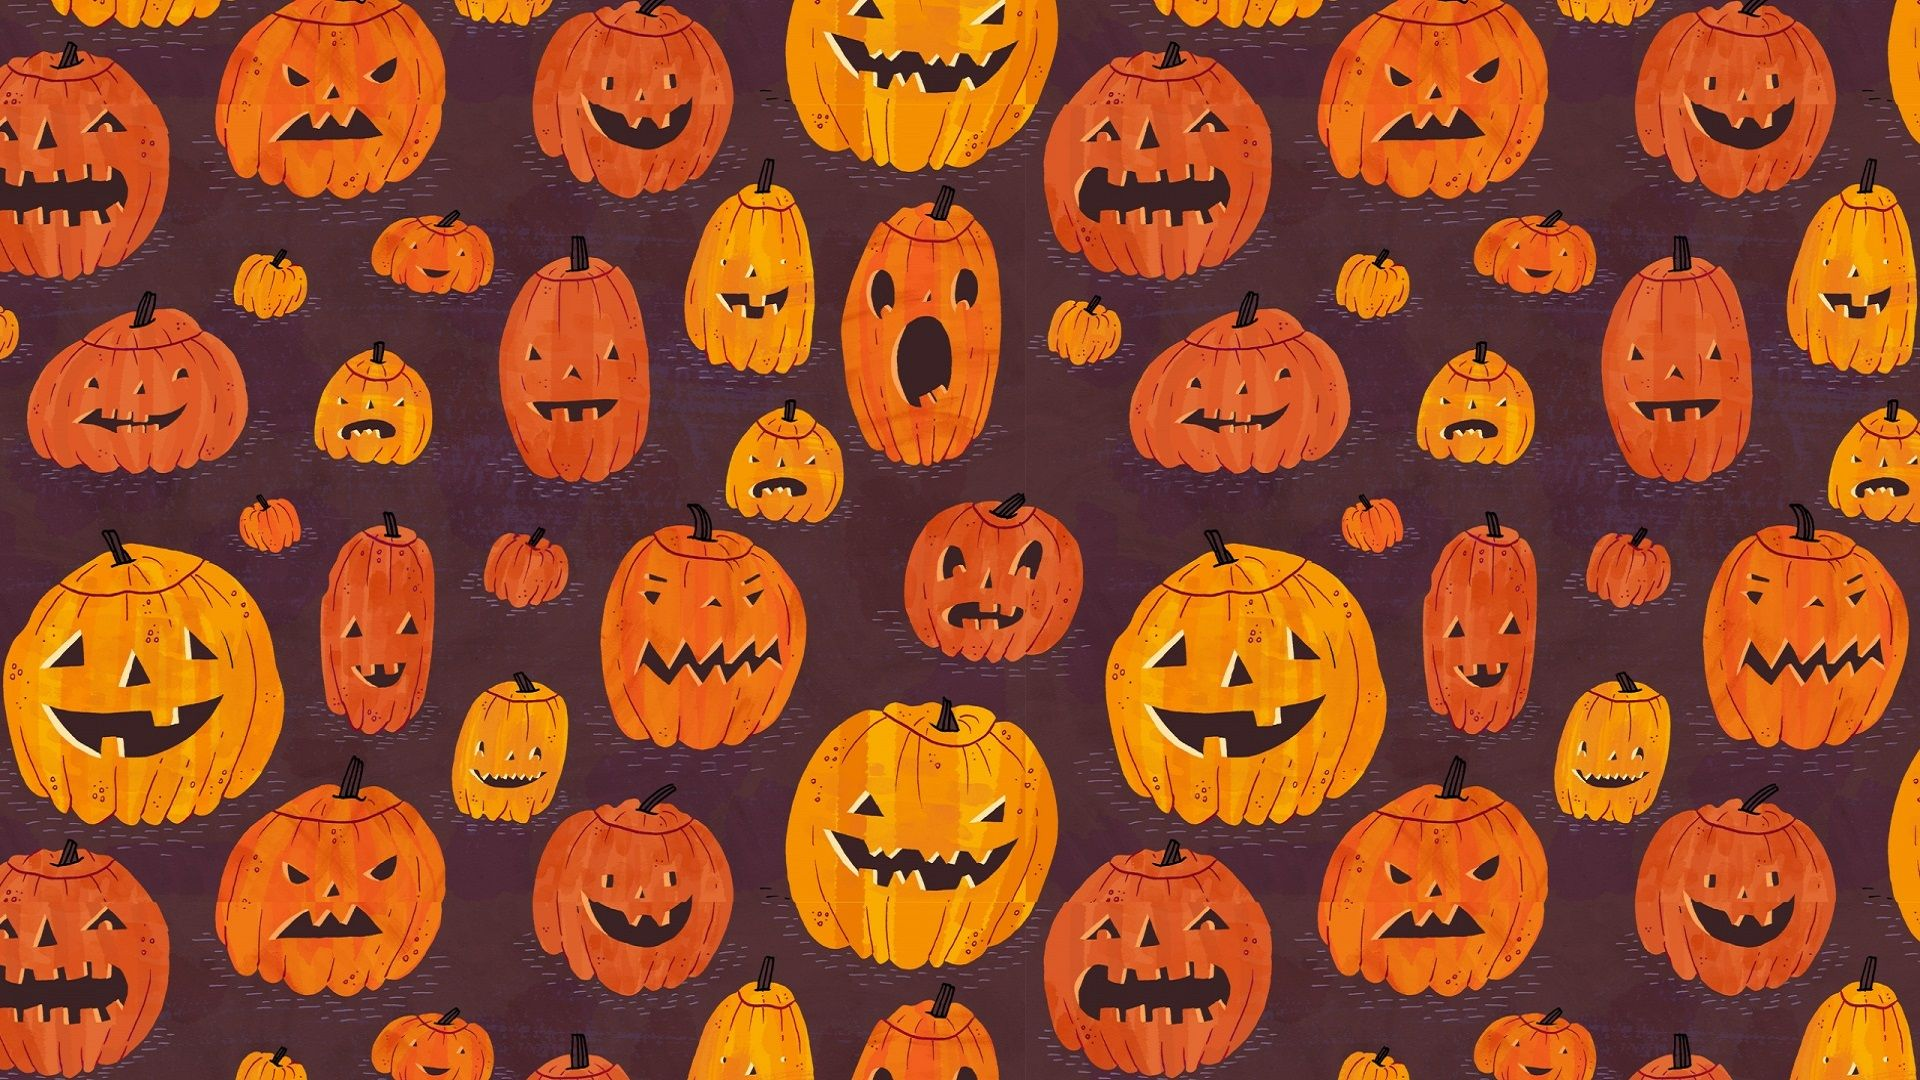 Happy Halloween Wallpaper Tumblr